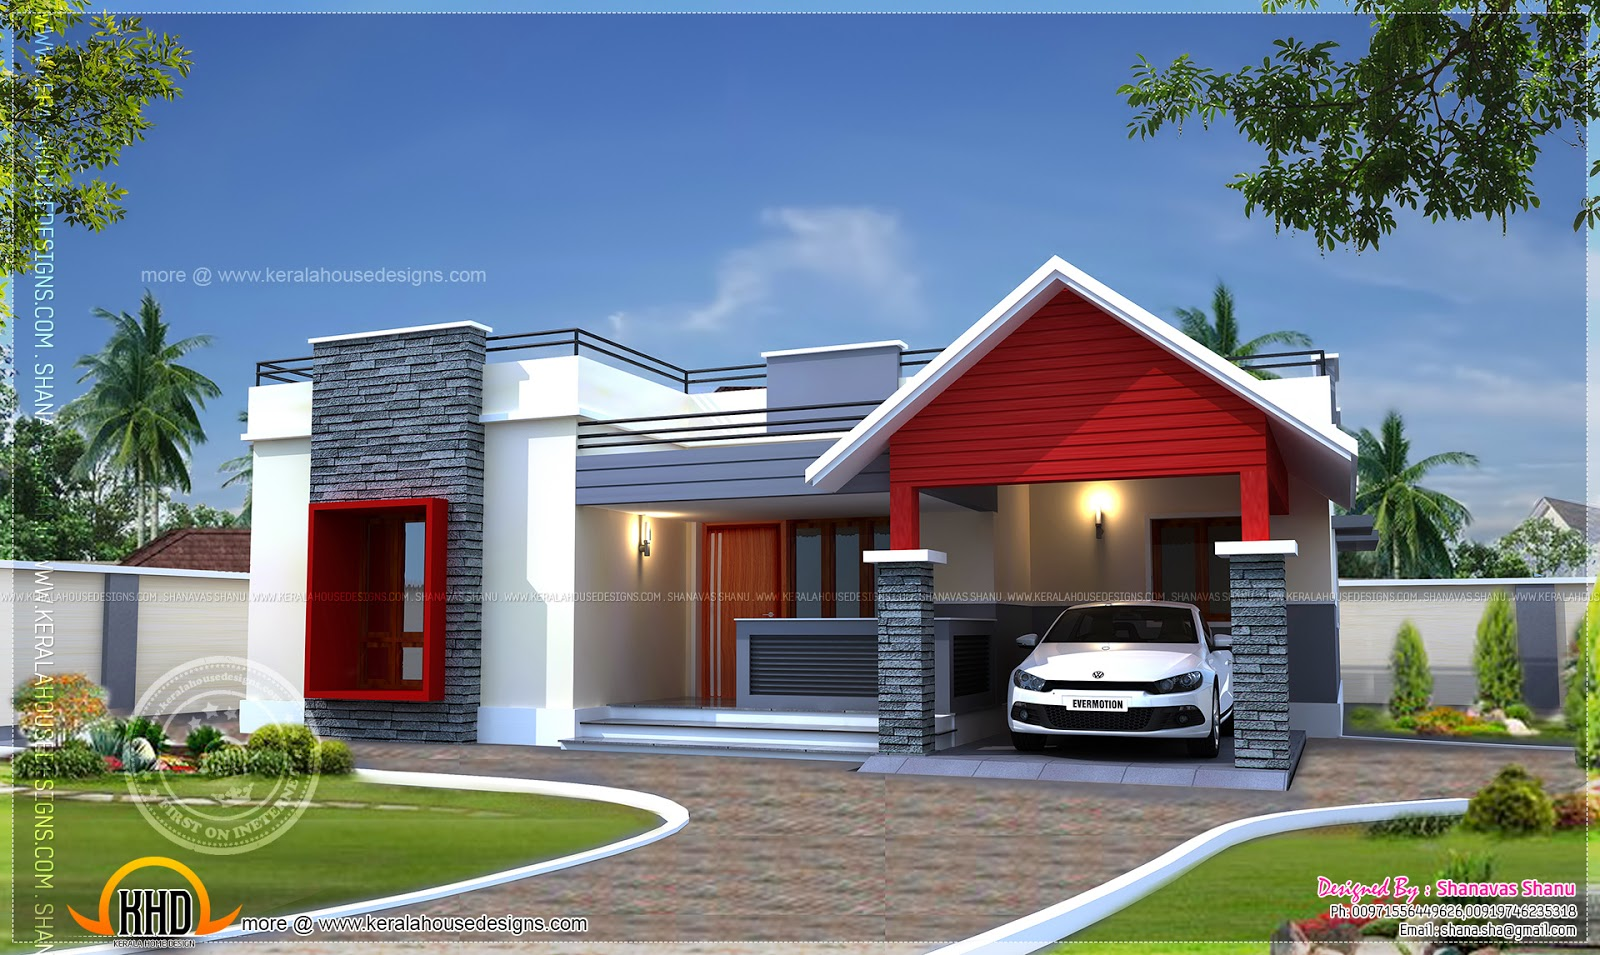 Single floor home plan in 1400 square feet kerala home for Free house plans and designs with cost to build